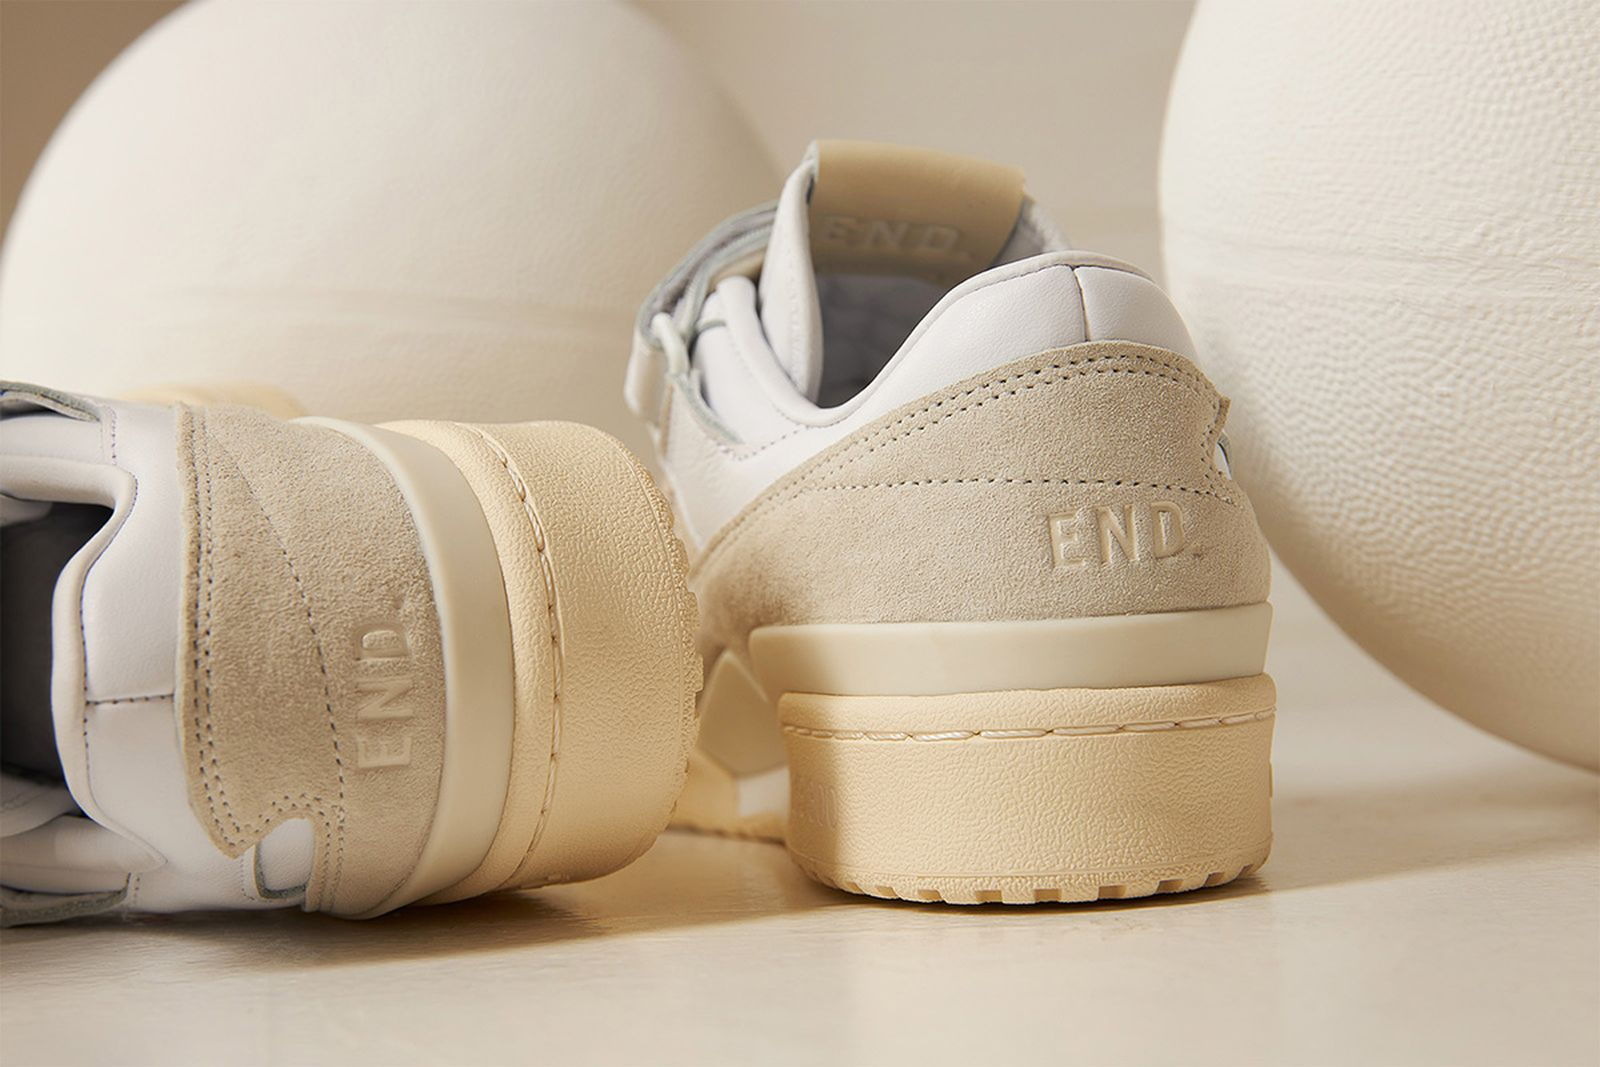 end-adidas-forum-low-release-date-price-04